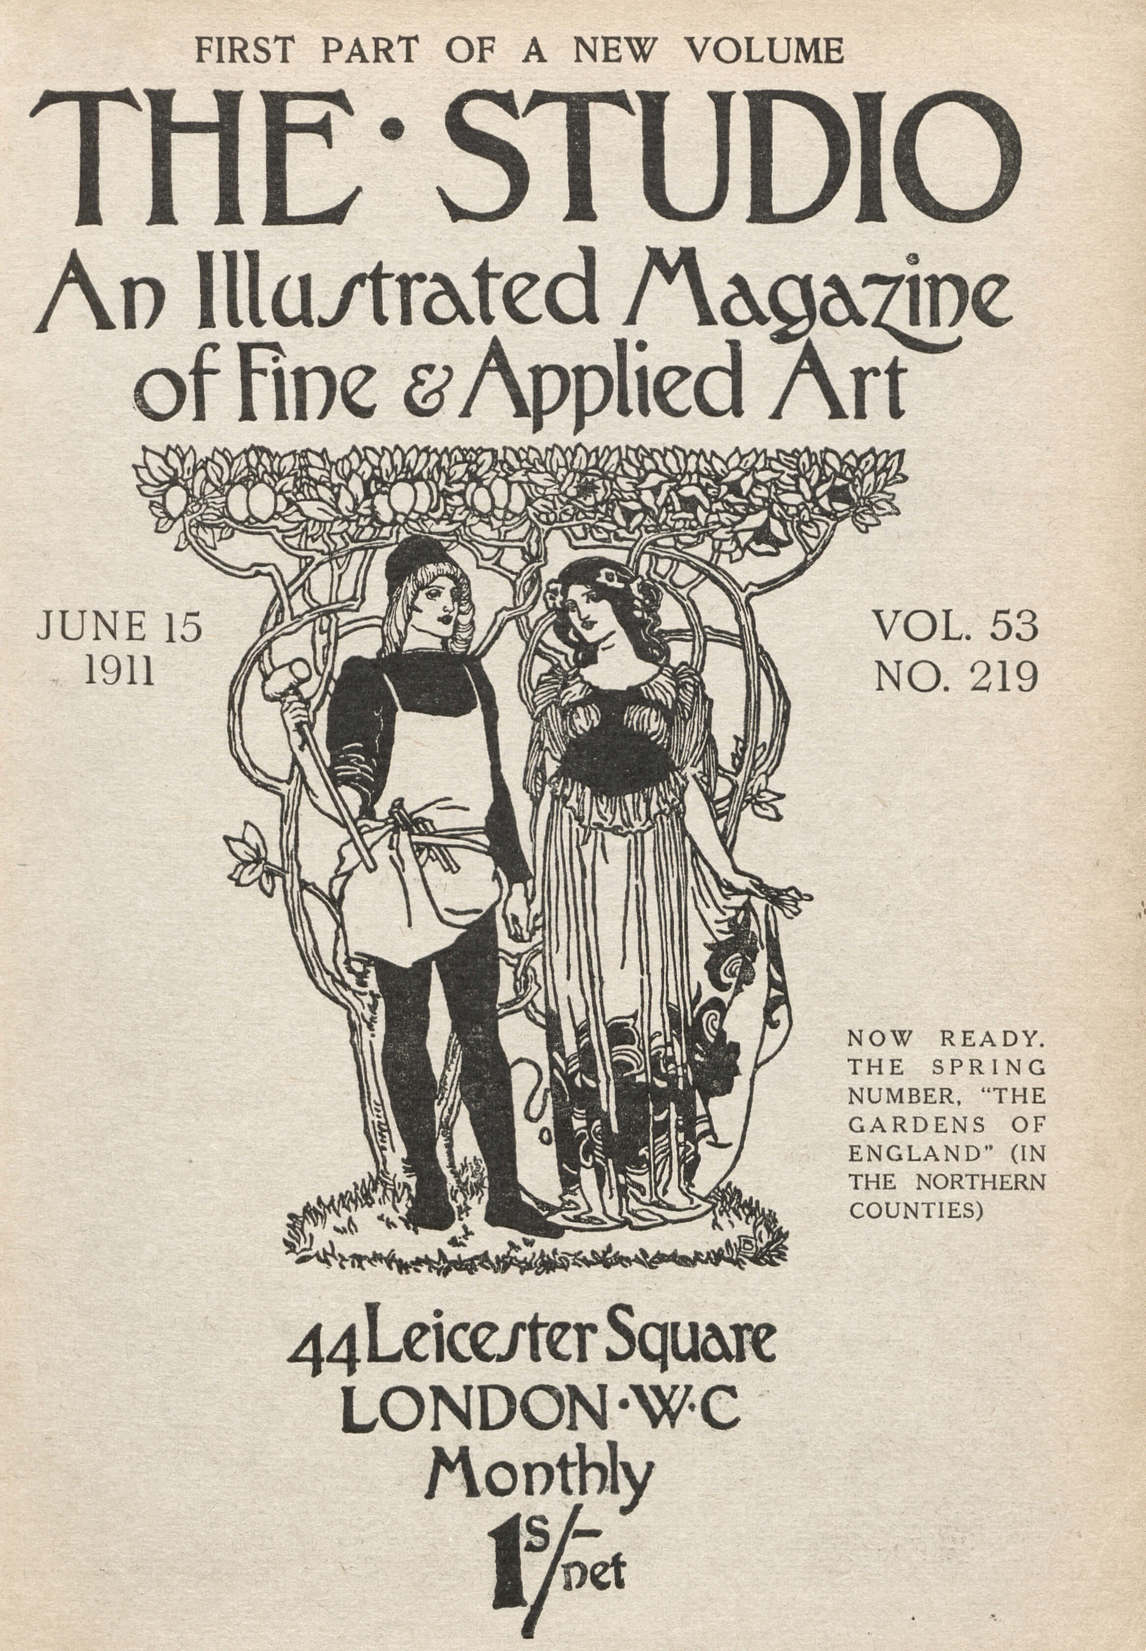 Art Canada Institute, Cover of The Studio: An Illustrated Magazine of Fine & Applied Art 53, no. 219 (June 15, 1911)